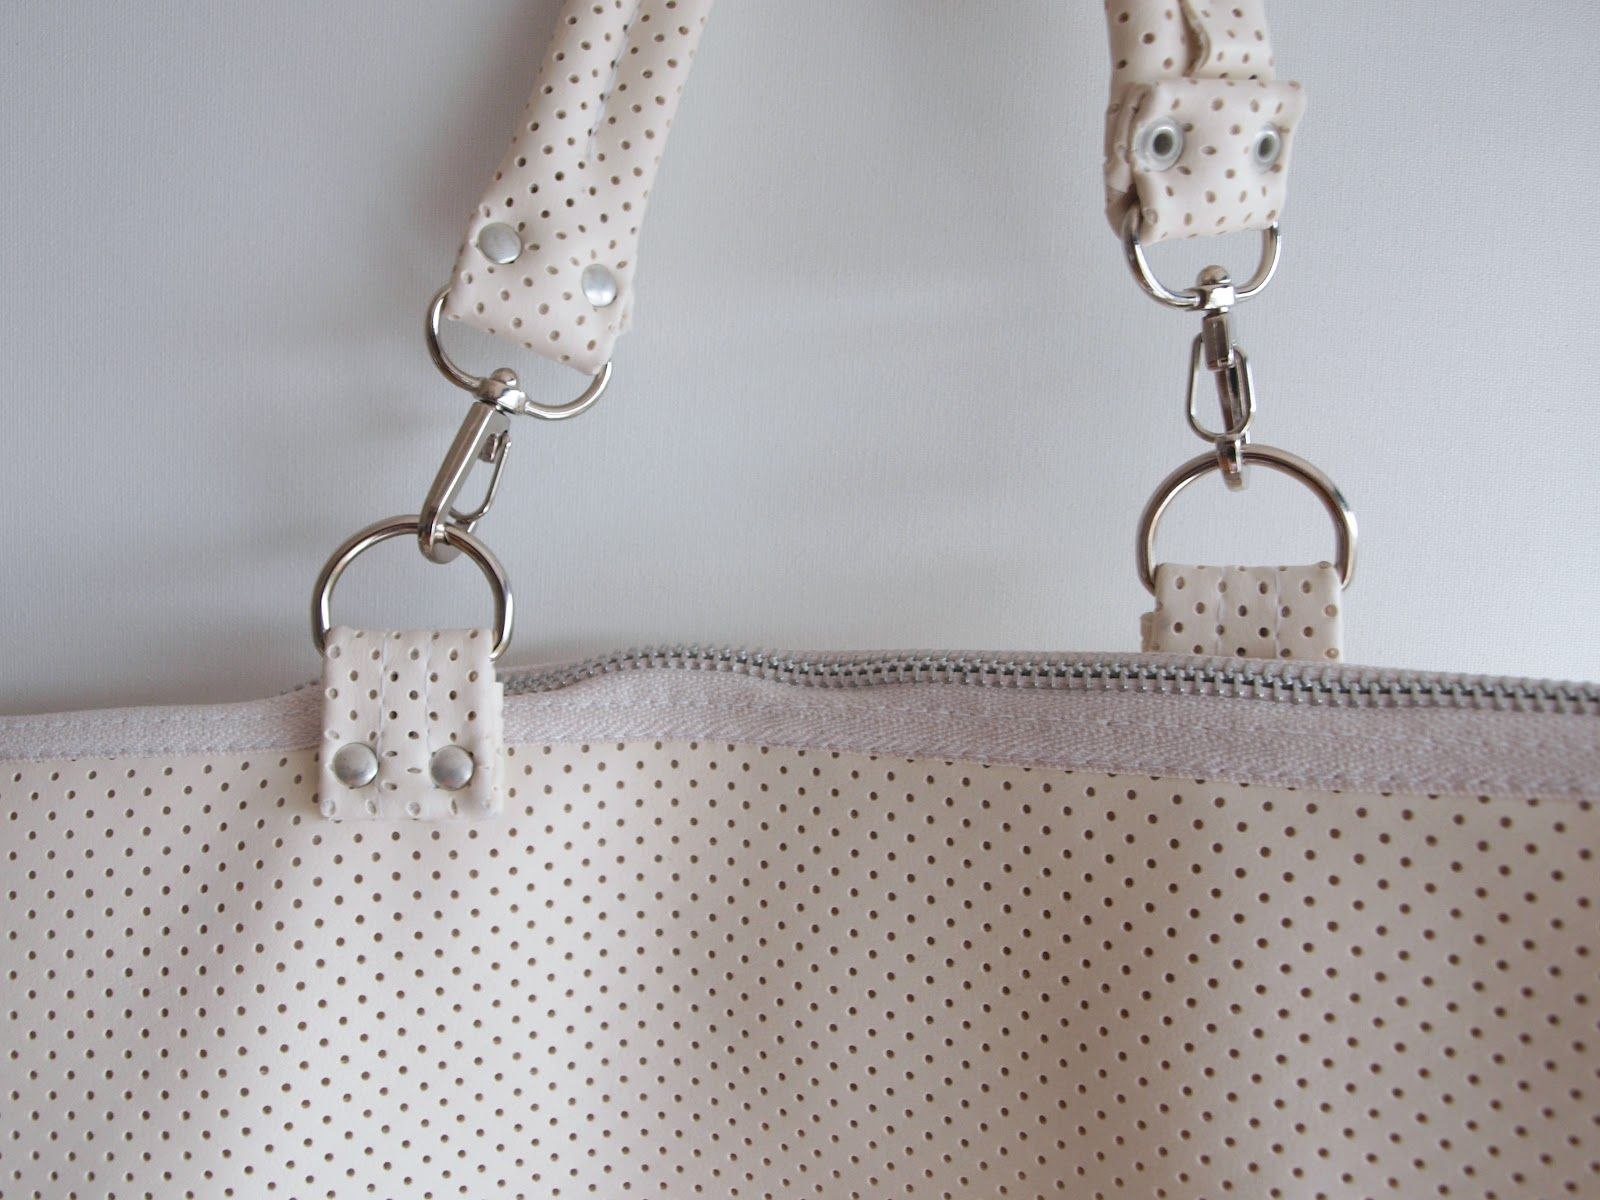 perforated version of the rectangle bag